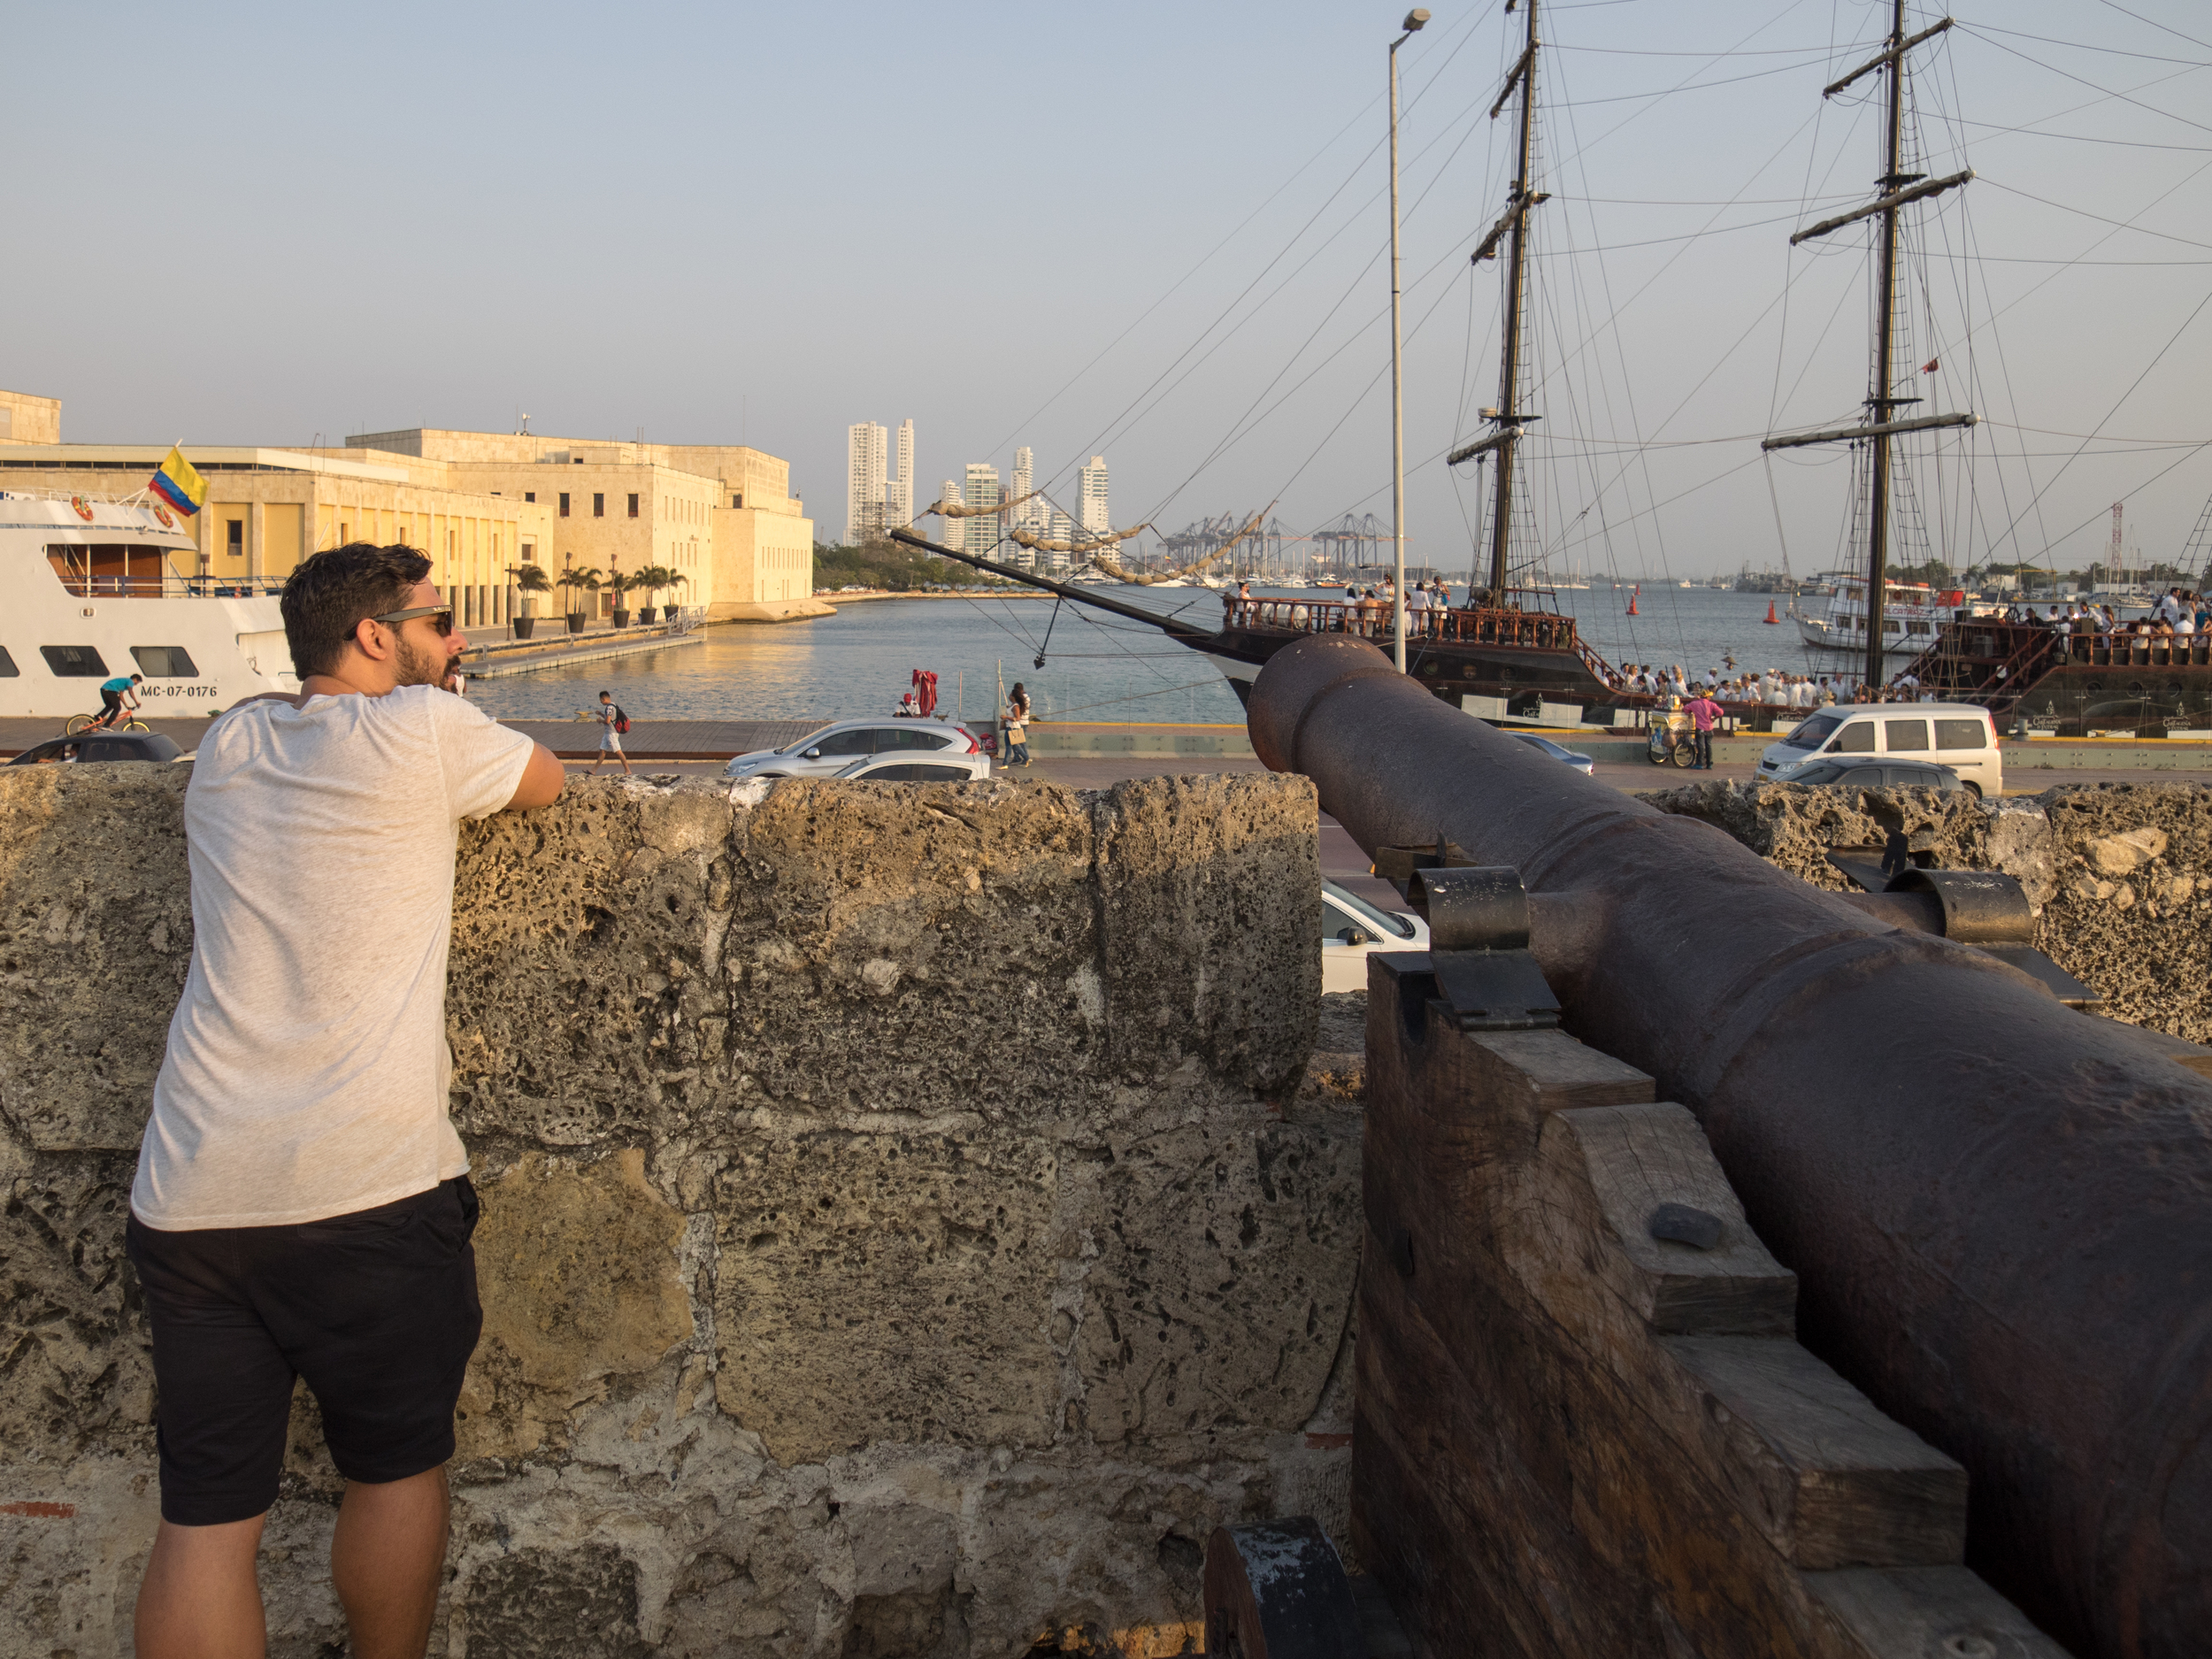 Cannons on the old wall of Cartagena